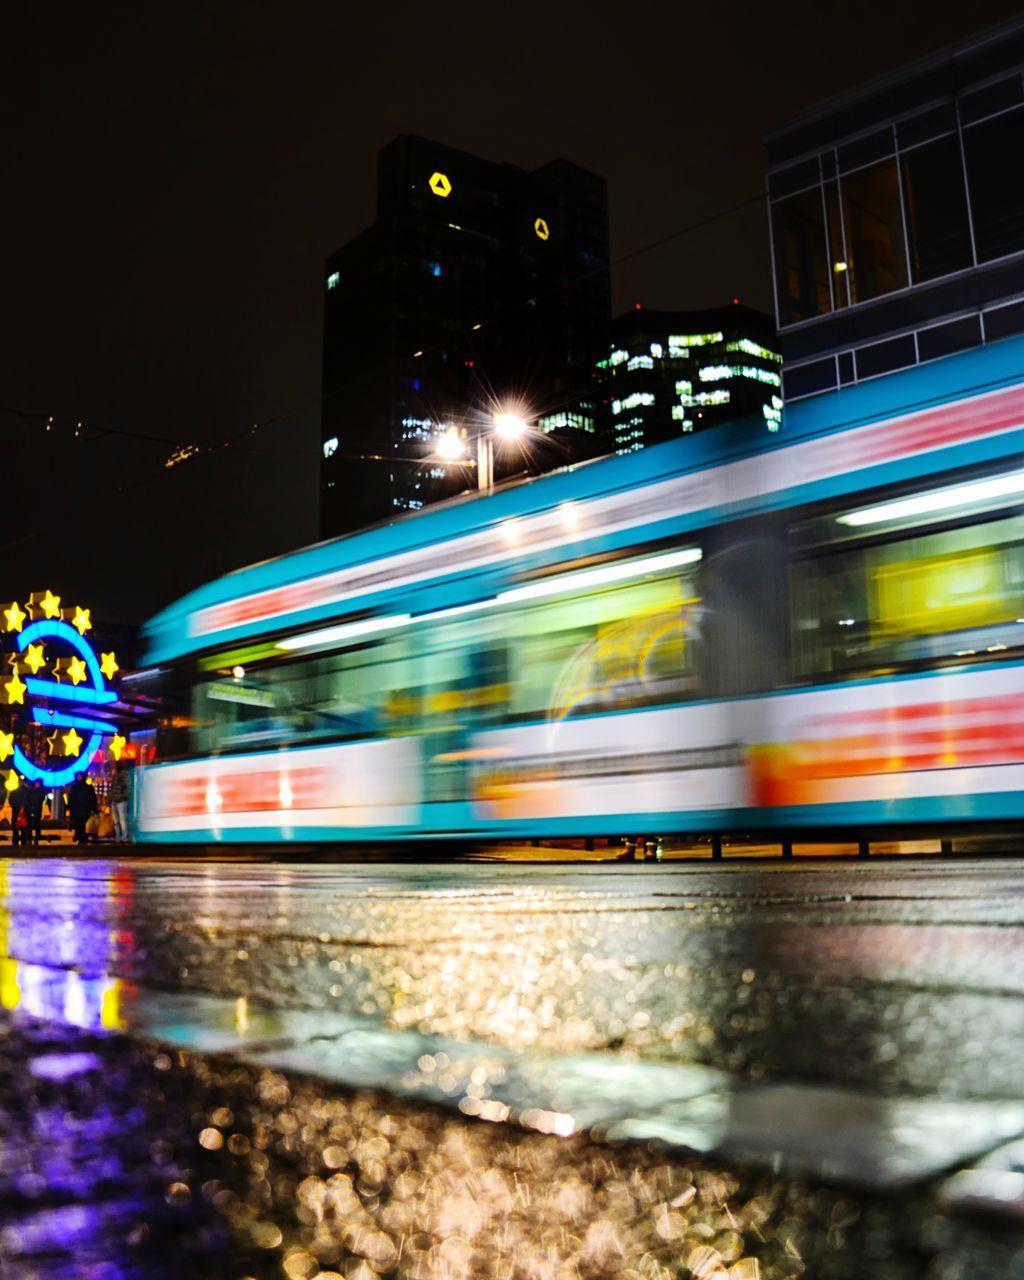 BLURRED MOTION OF CITY STREET AT NIGHT